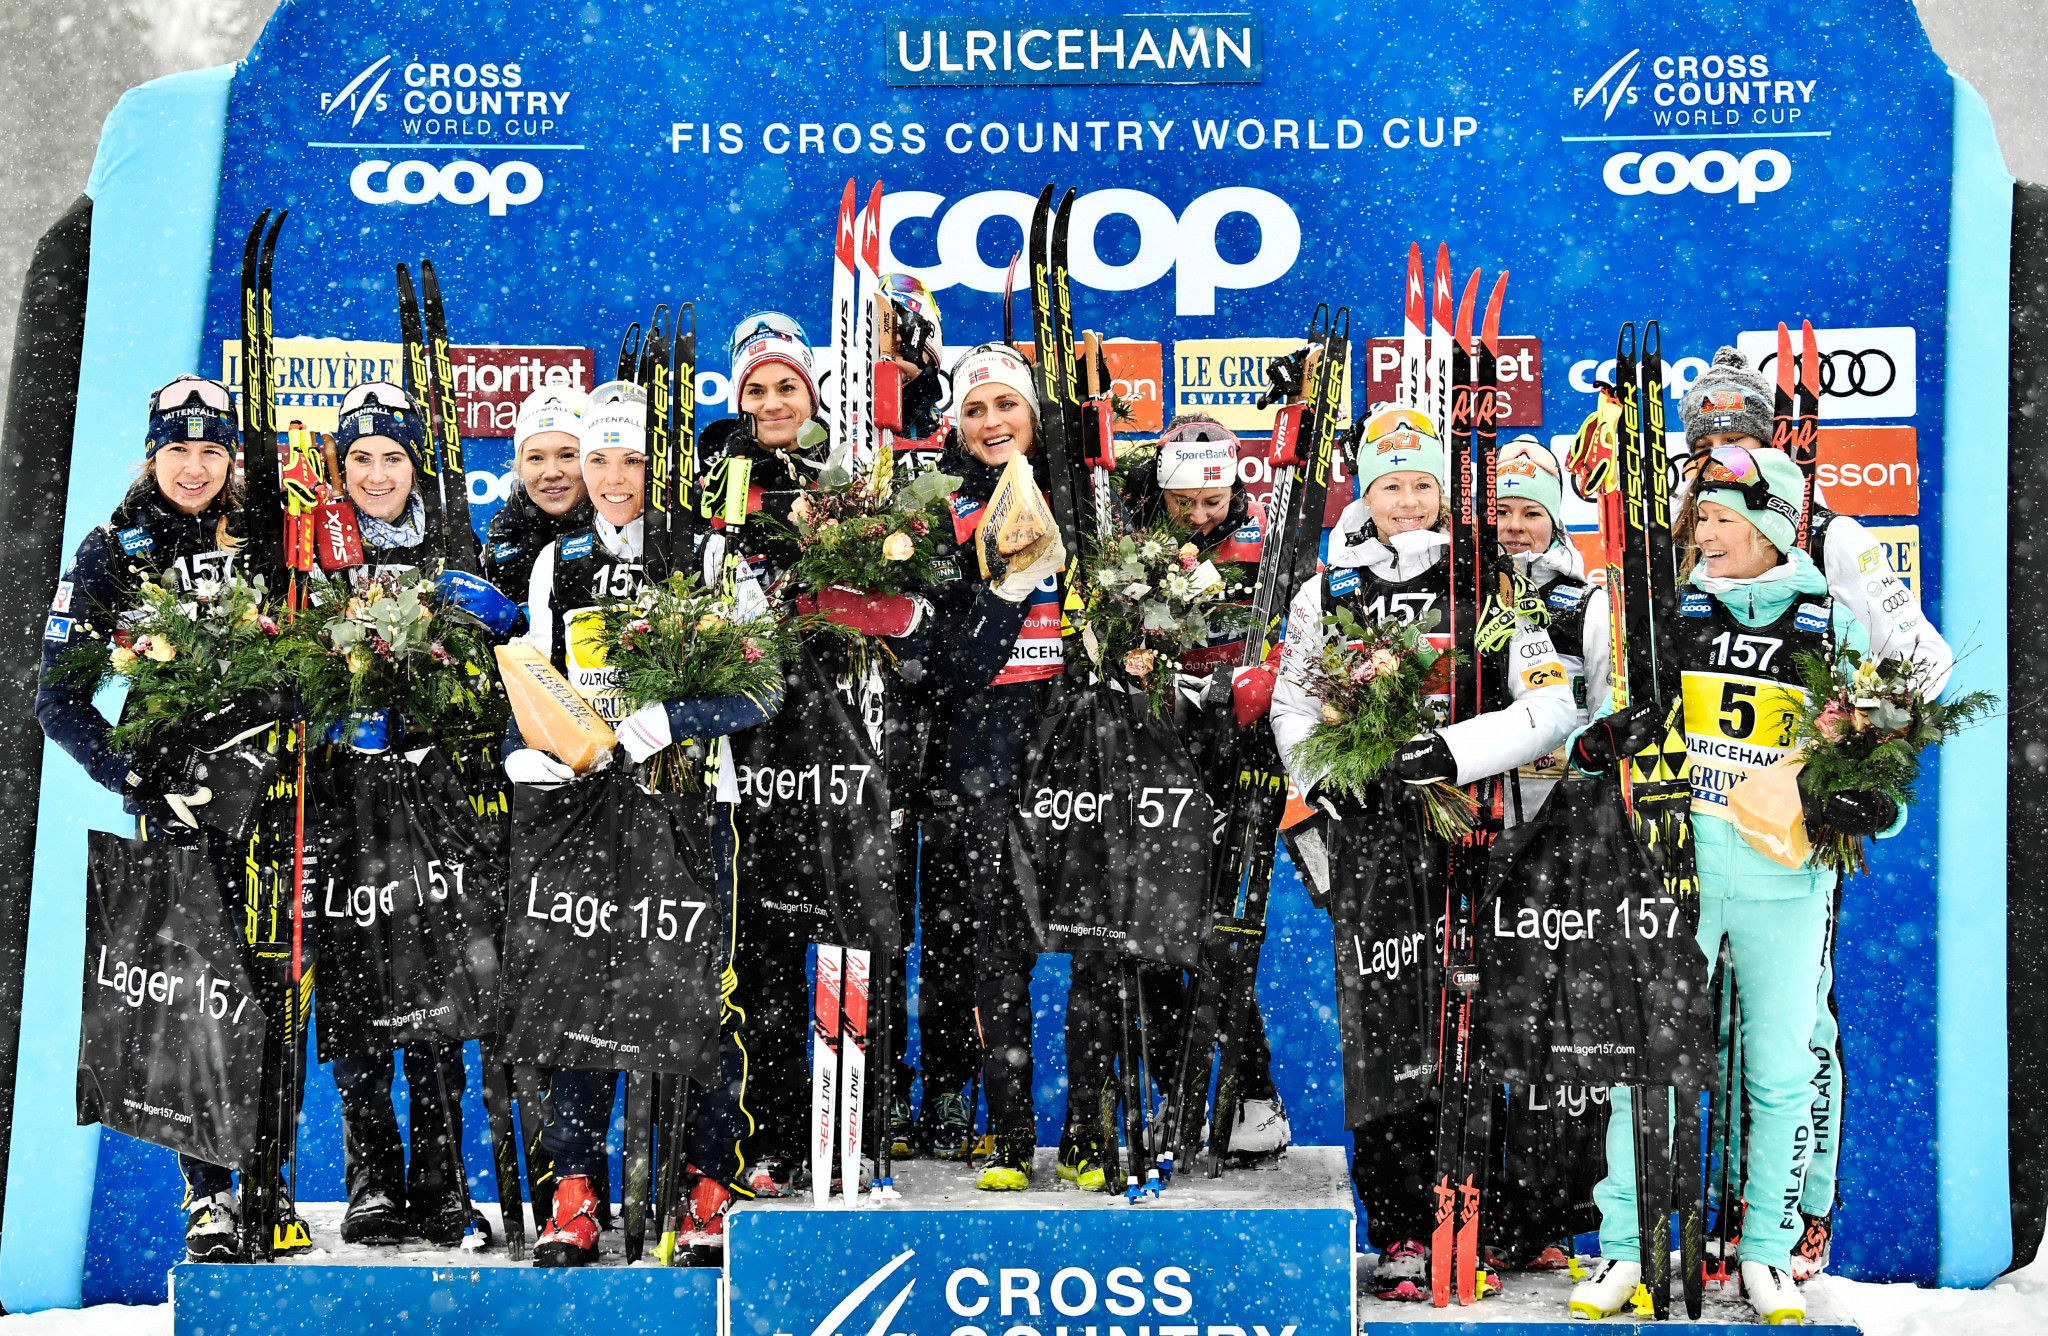 Norway win women's relay as Russia claim men's title at FIS Cross Country World Cup in Ulricenhamn